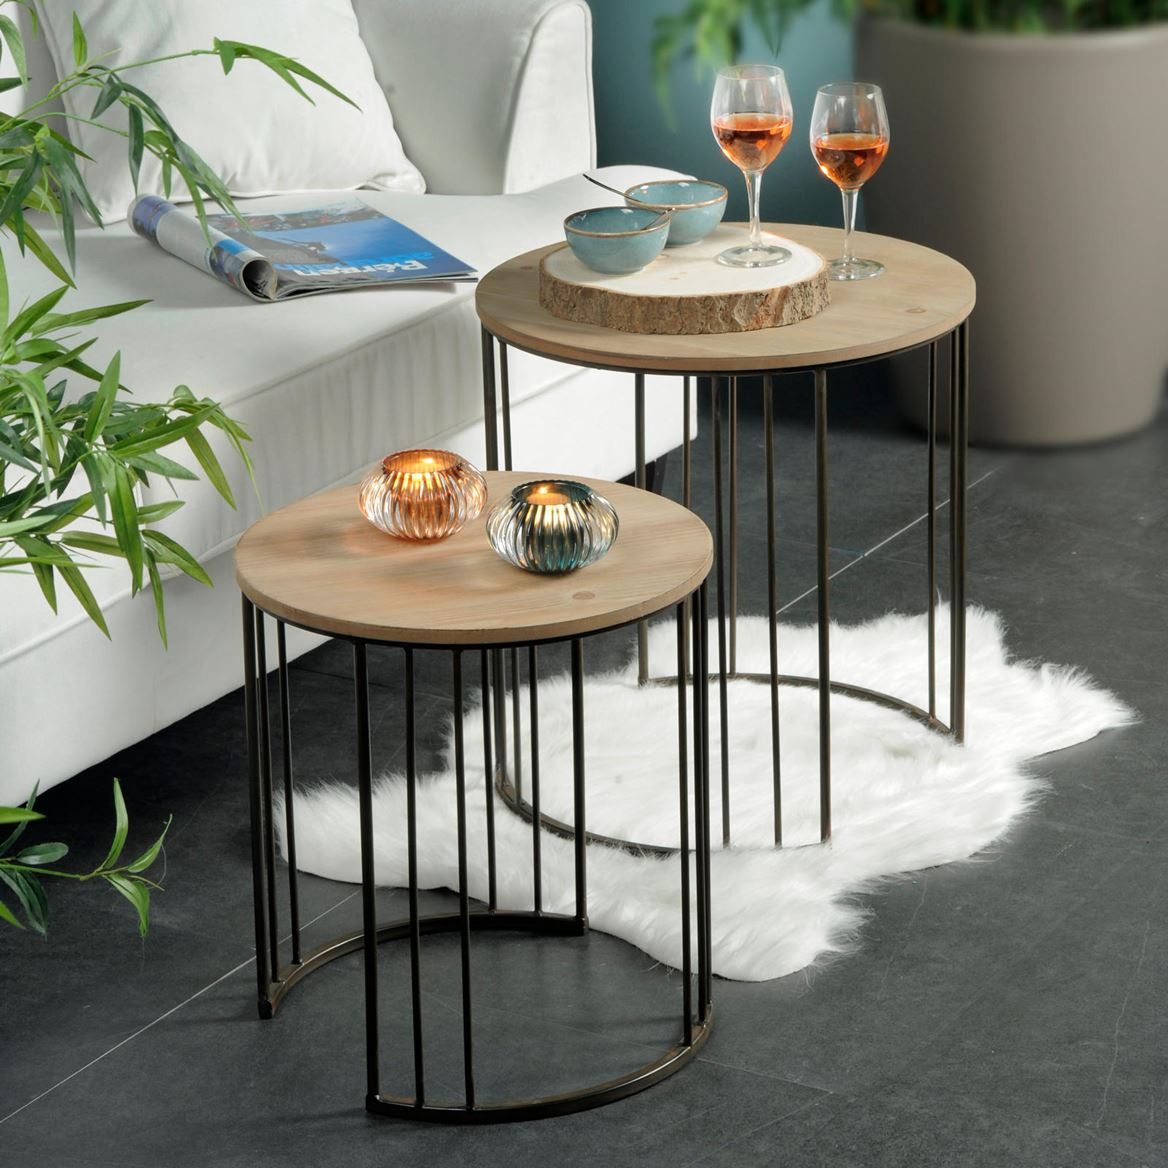 frames tables d 39 appoint set de 2 produits feelgood pour la maison et le jardin chez casa. Black Bedroom Furniture Sets. Home Design Ideas